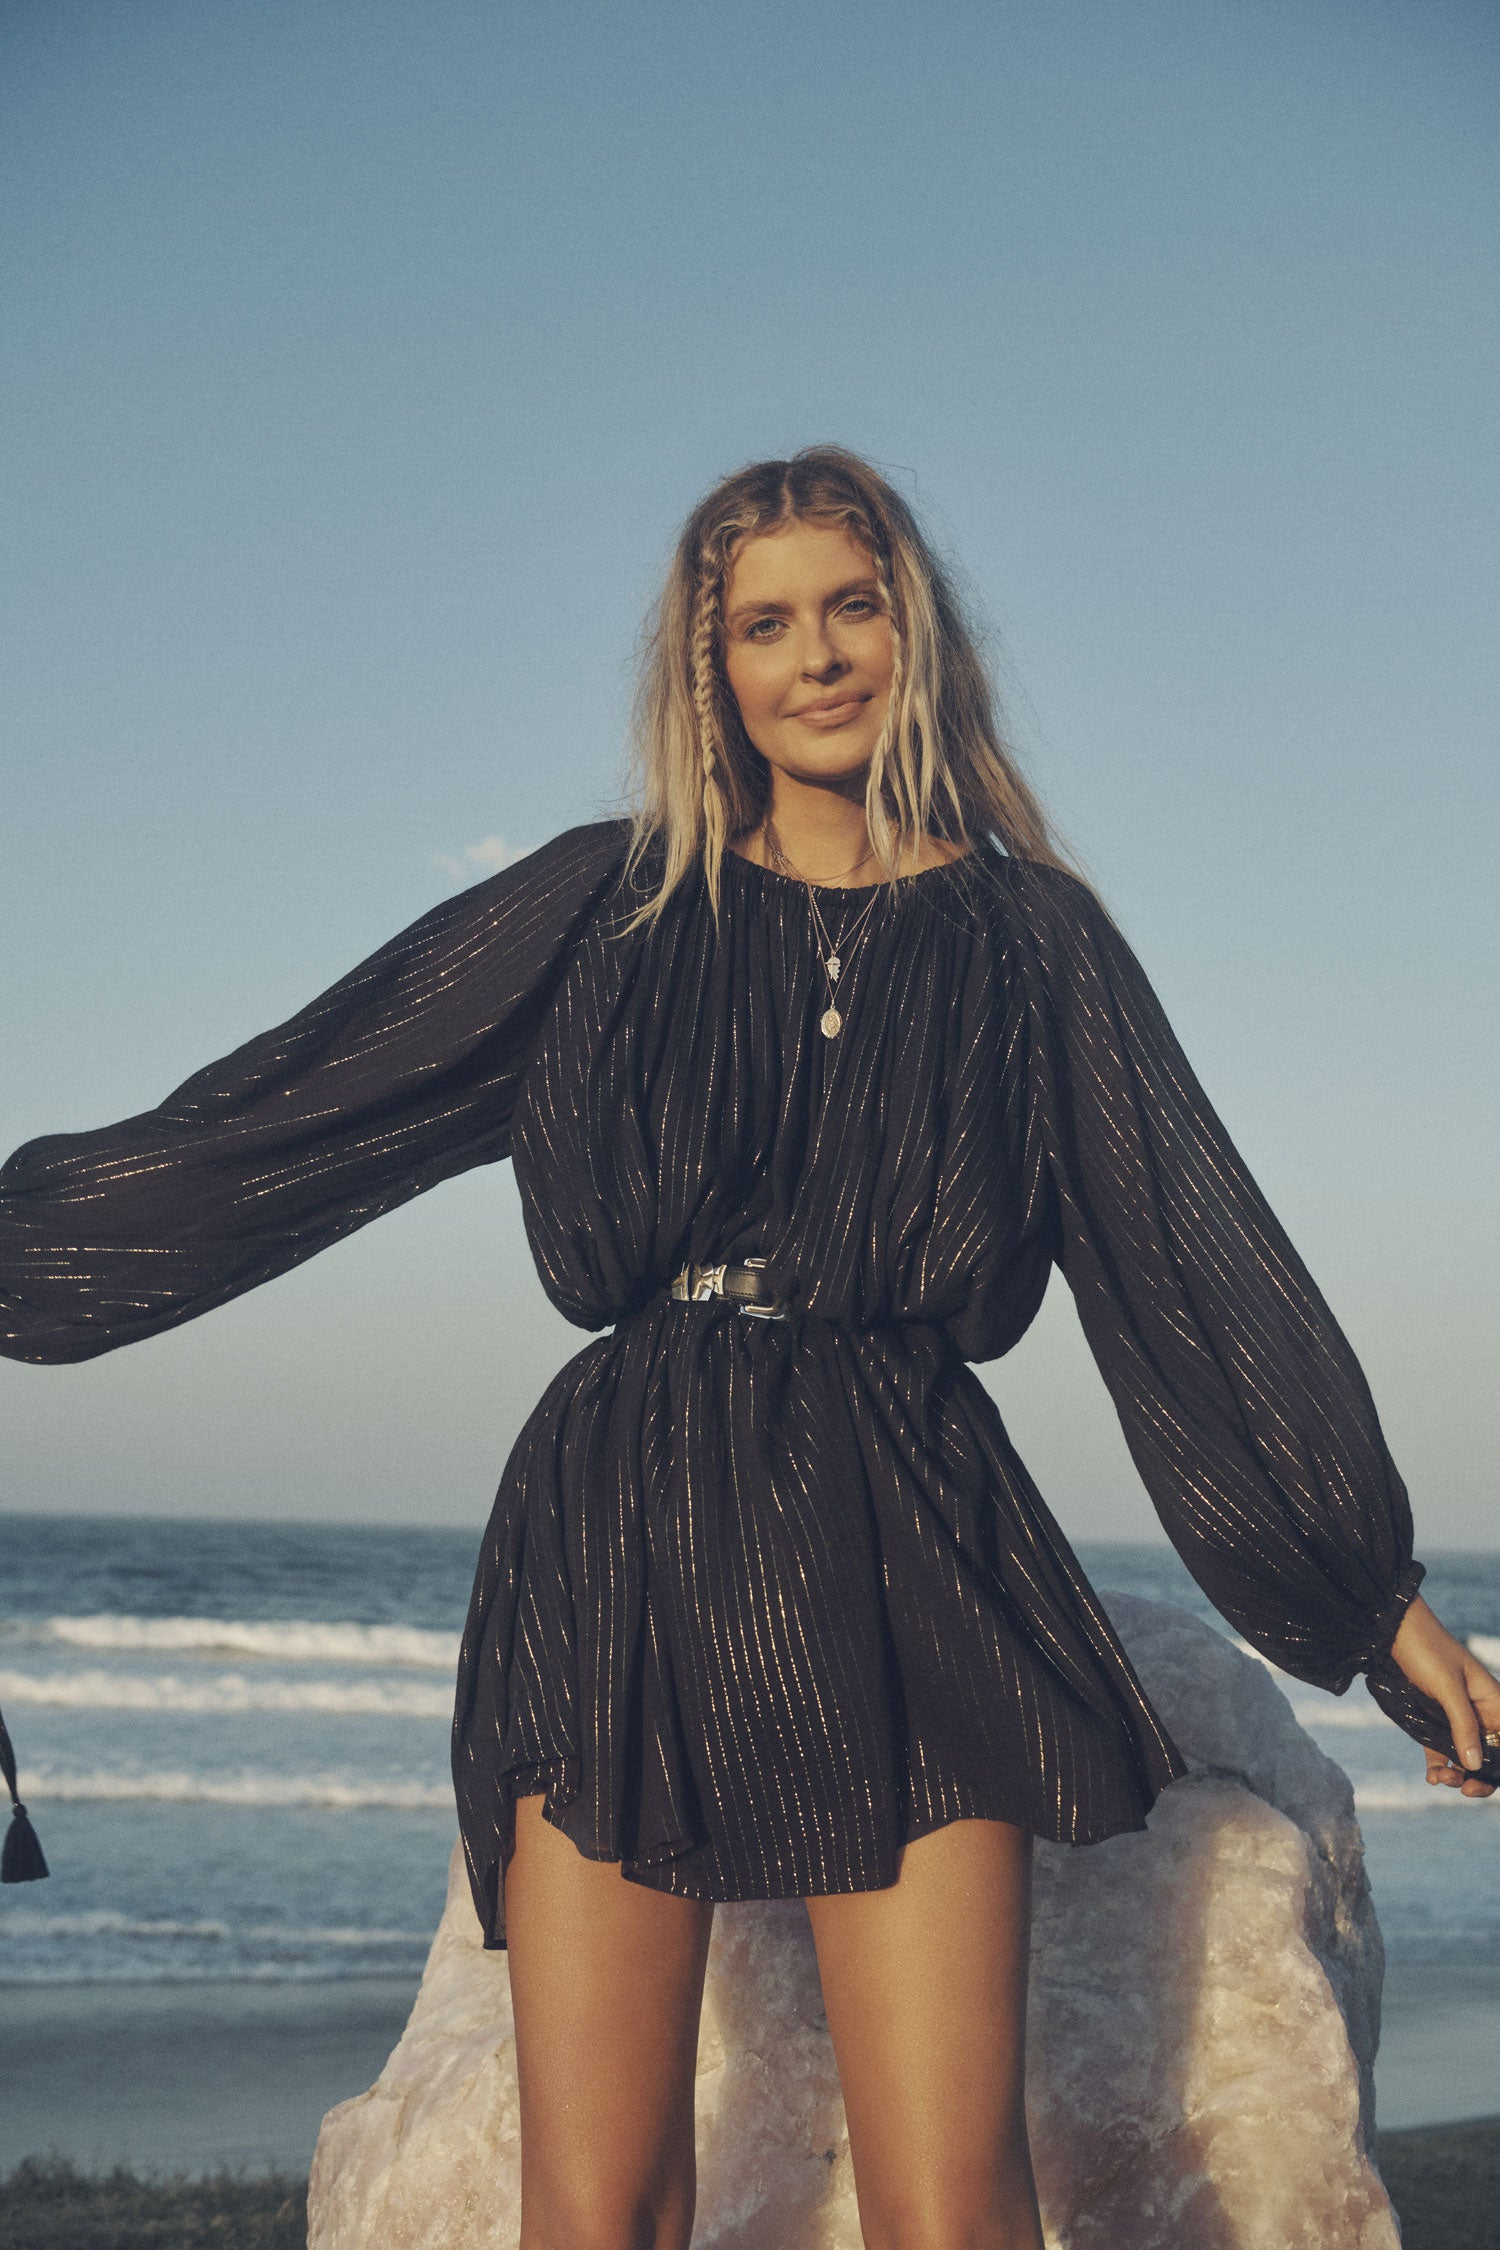 Influencer and model, Elle Ferguson, posing in front of a large crystal with the beach in the background while wearing gold jewellery, a black belt and the Spell black, metallic Jagger Mini Dress with elasticated cuffs.